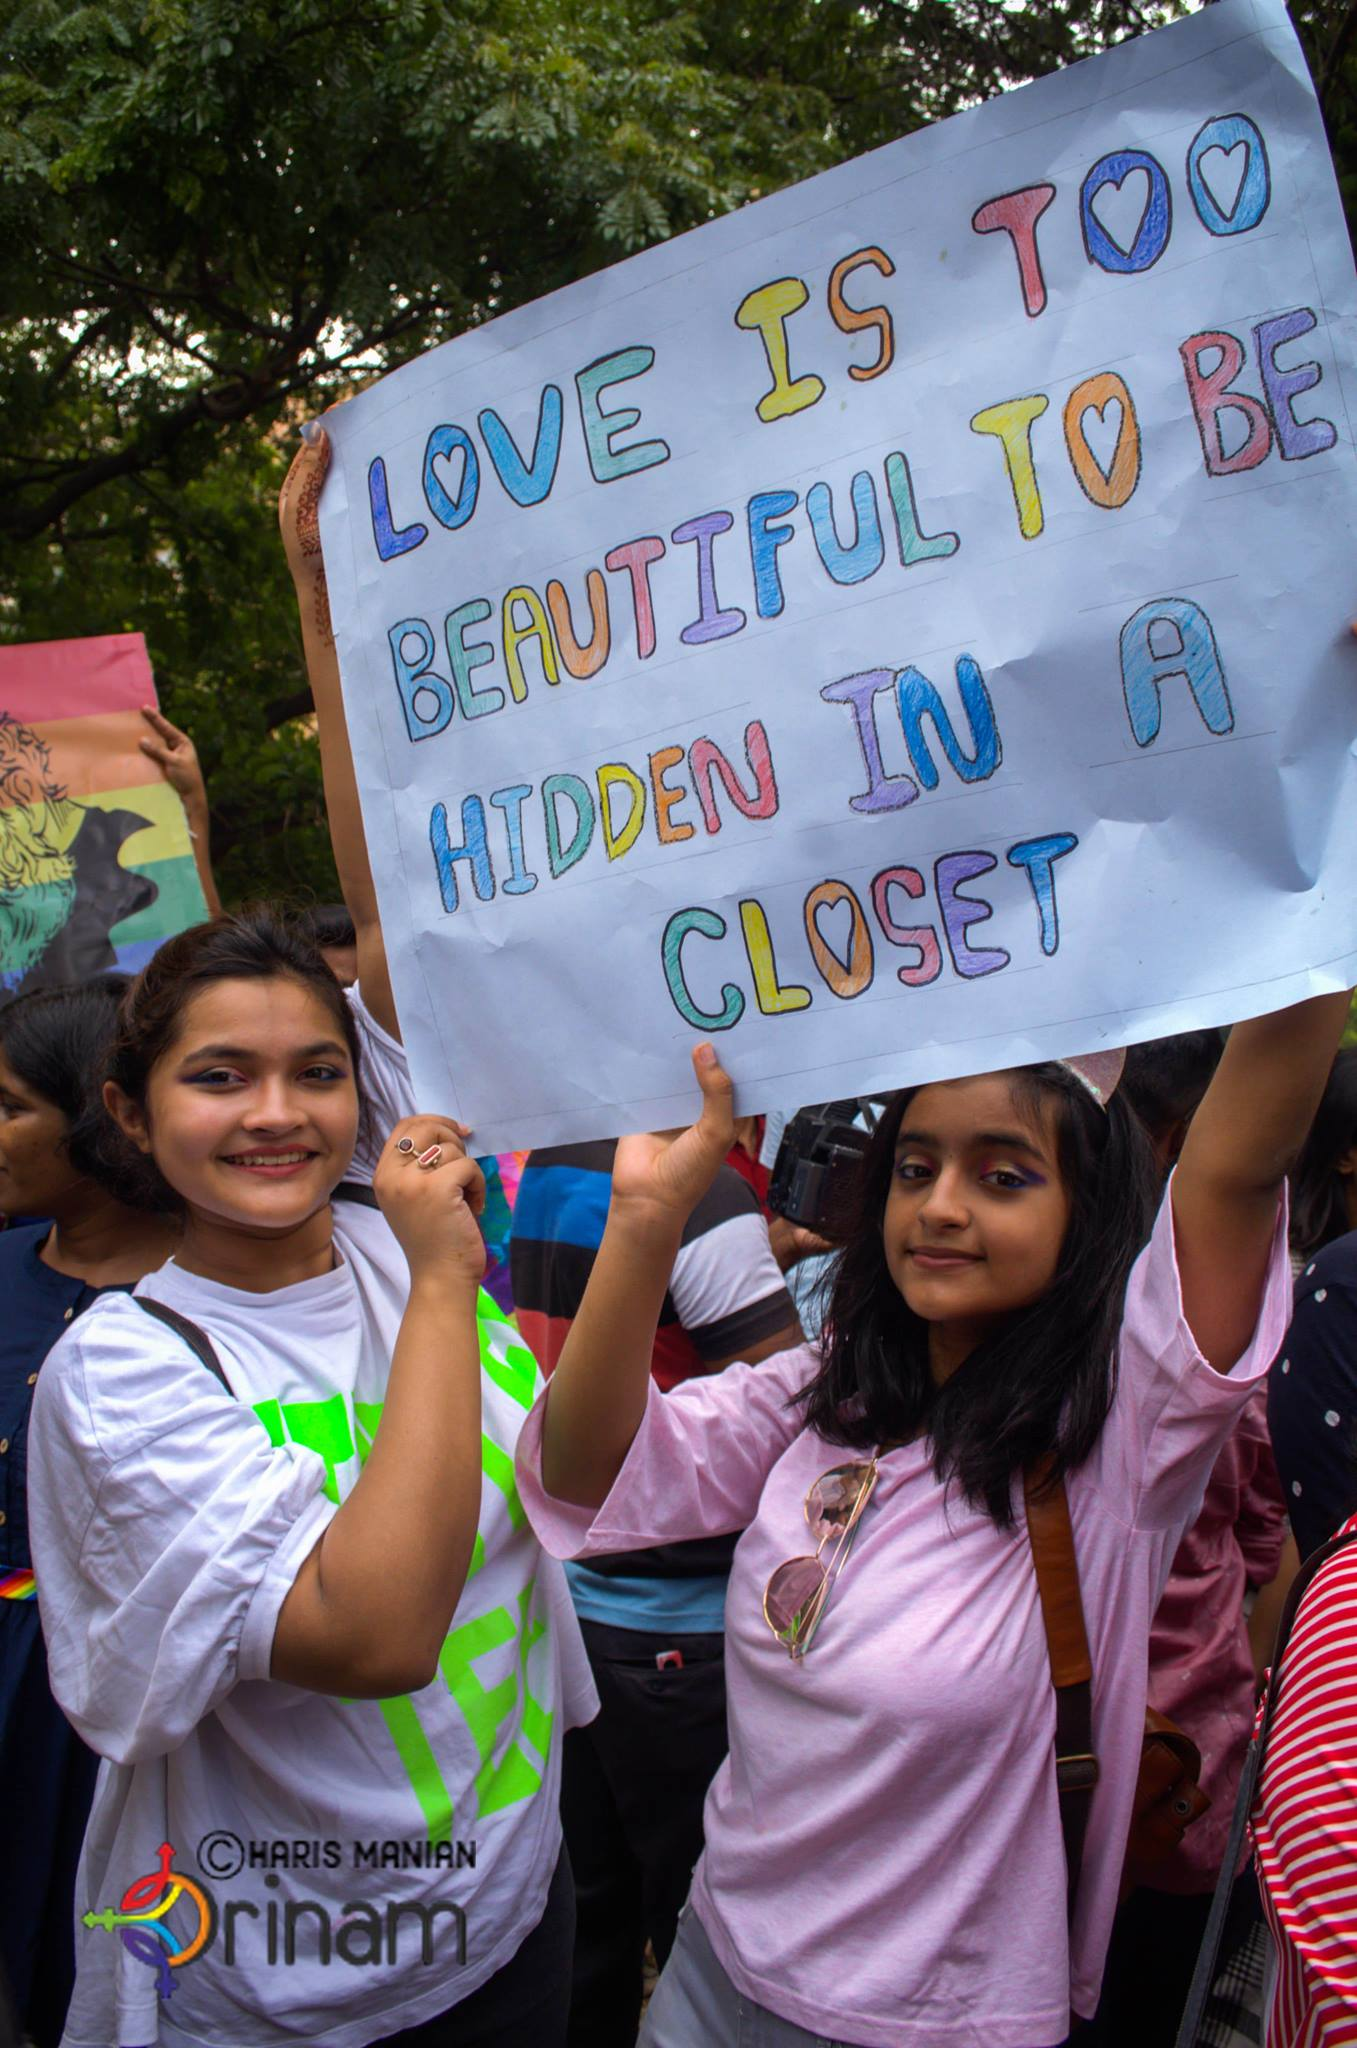 Image from Chennai Pride 2018